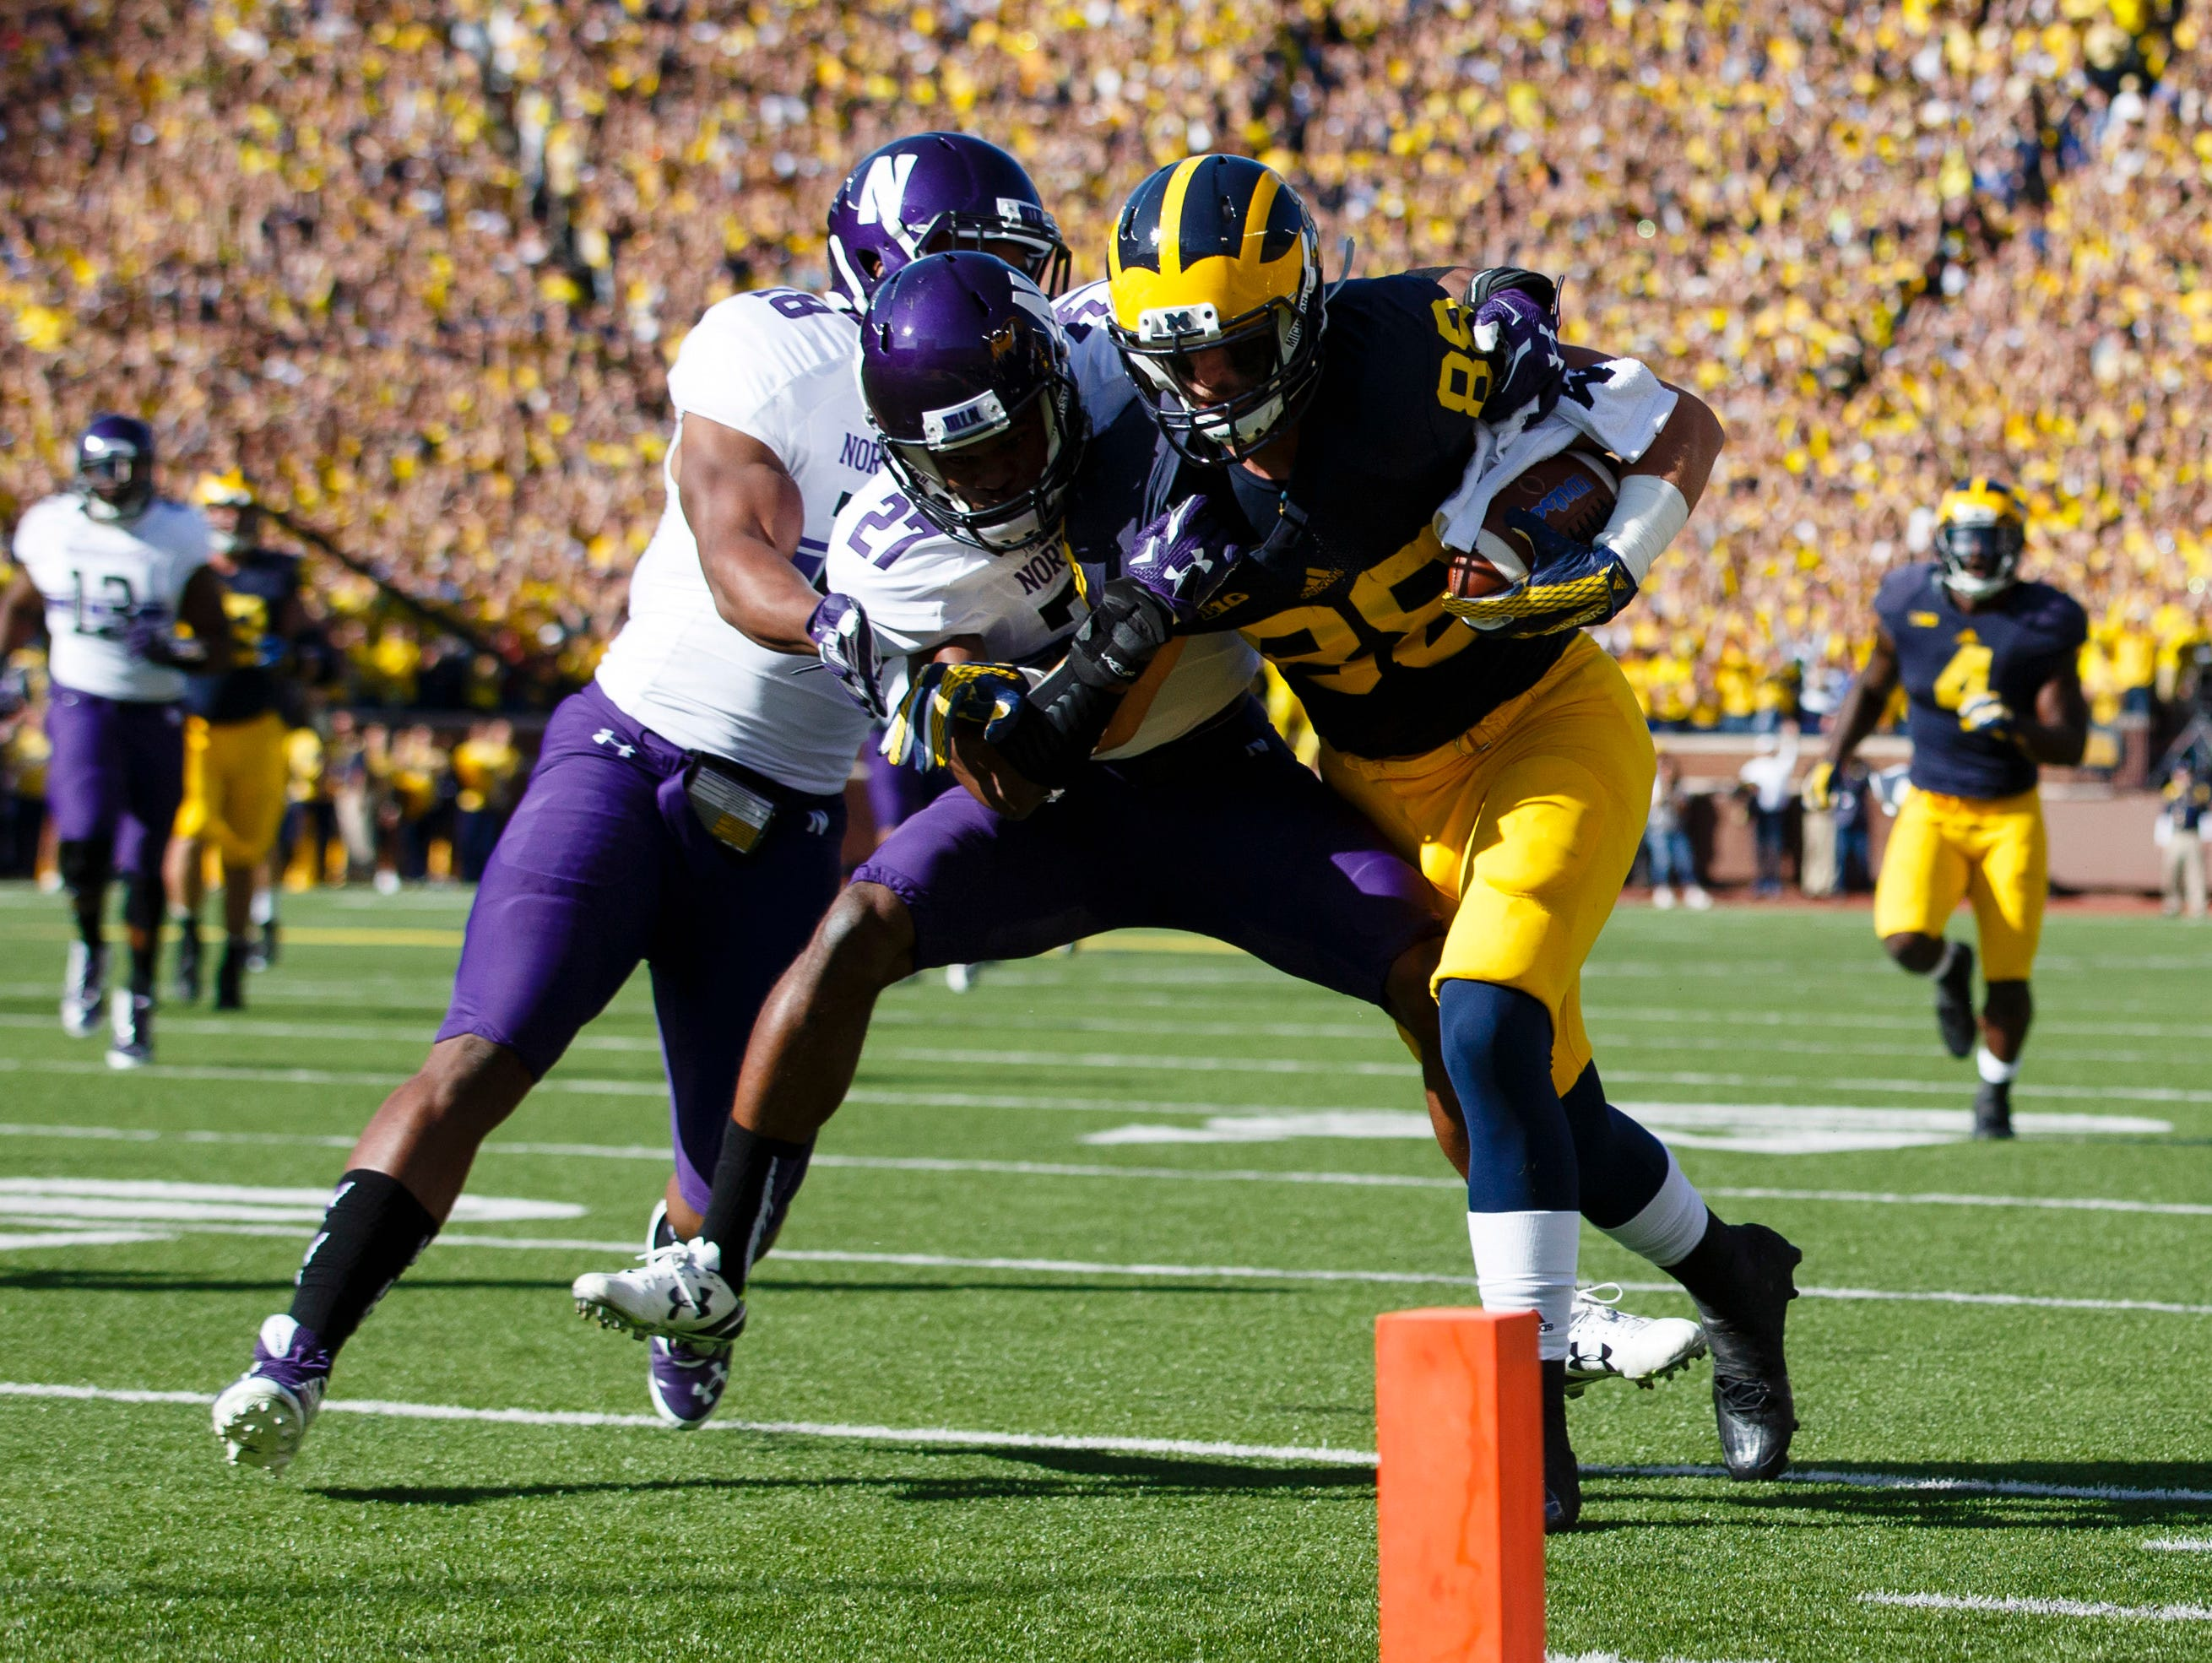 Oct 10, 2015; Ann Arbor, MI, USA; Michigan Wolverines tight end Jake Butt (88) is tackled just short of the end zone by Northwestern Wildcats cornerback Matthew Harris (27) in the first quarter at Michigan Stadium.